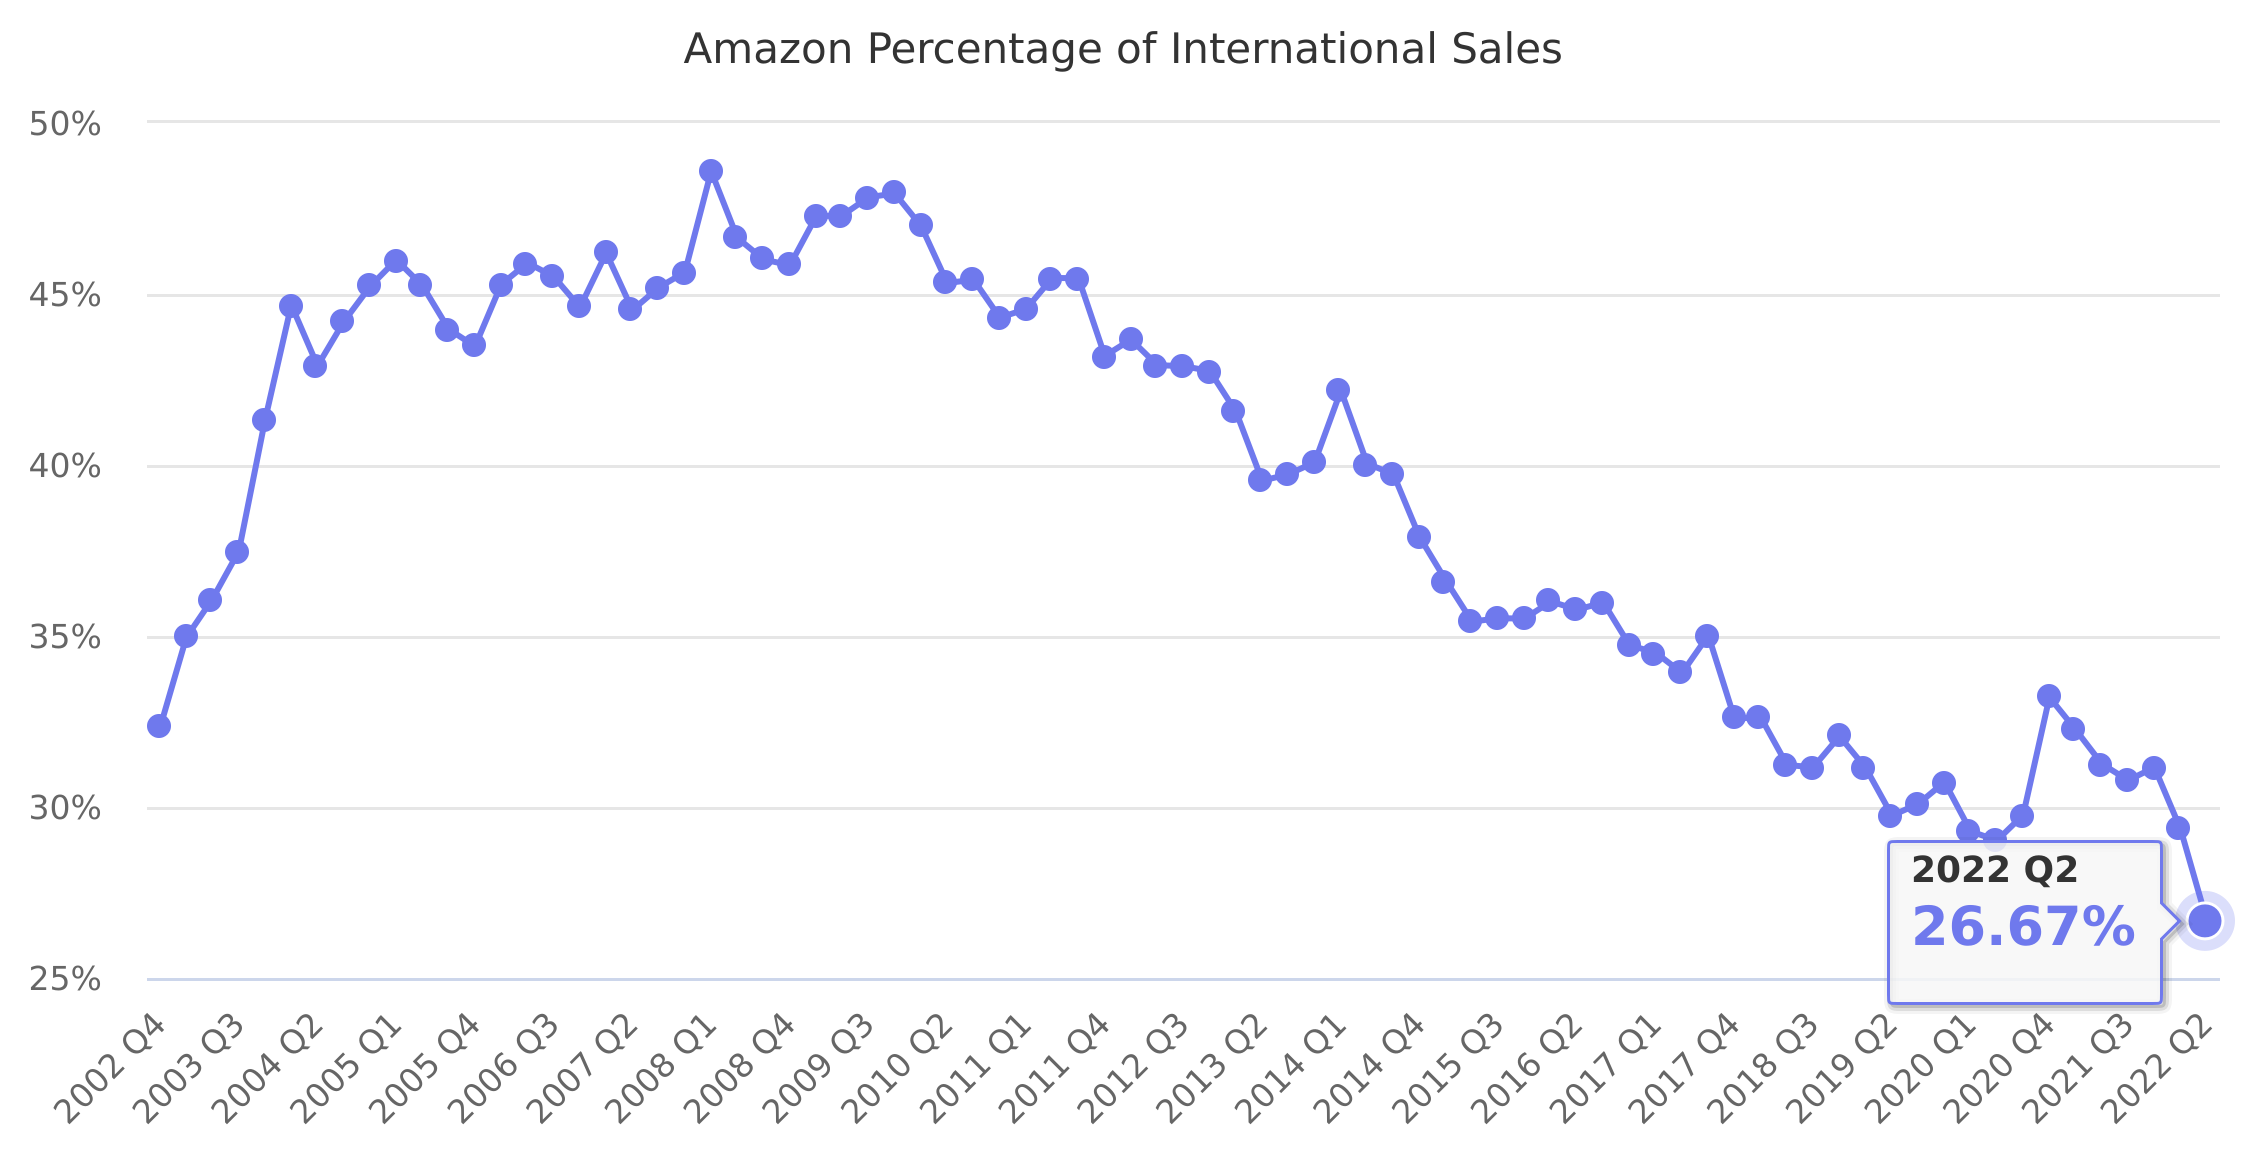 Amazon Percentage of International Sales 2002-2018